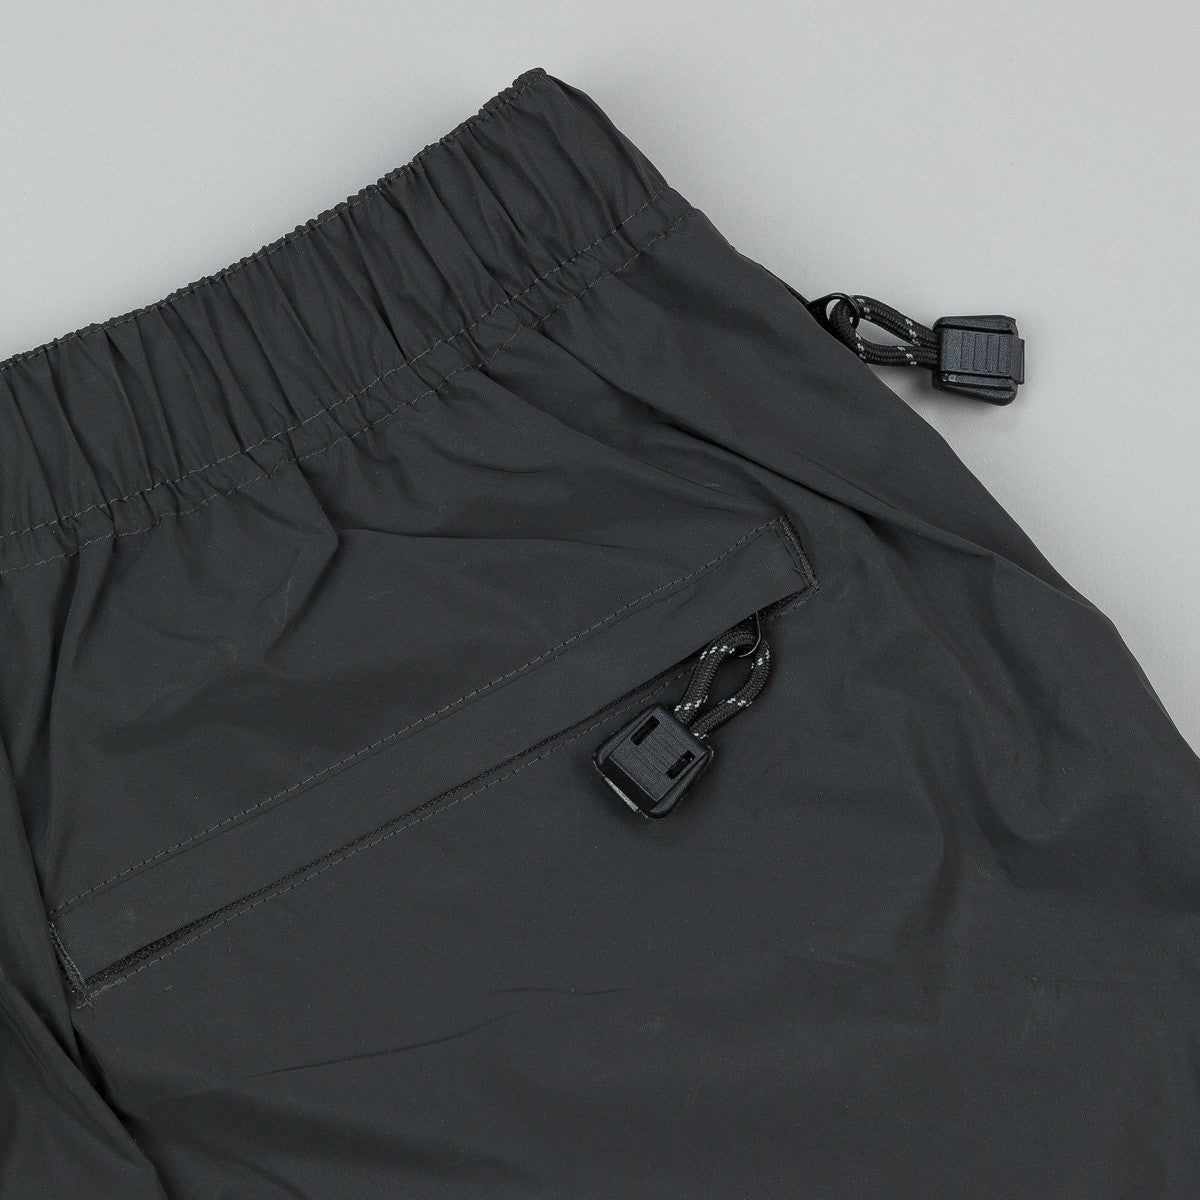 HUF x Bronze 56k Reflective Sweatpants - Black